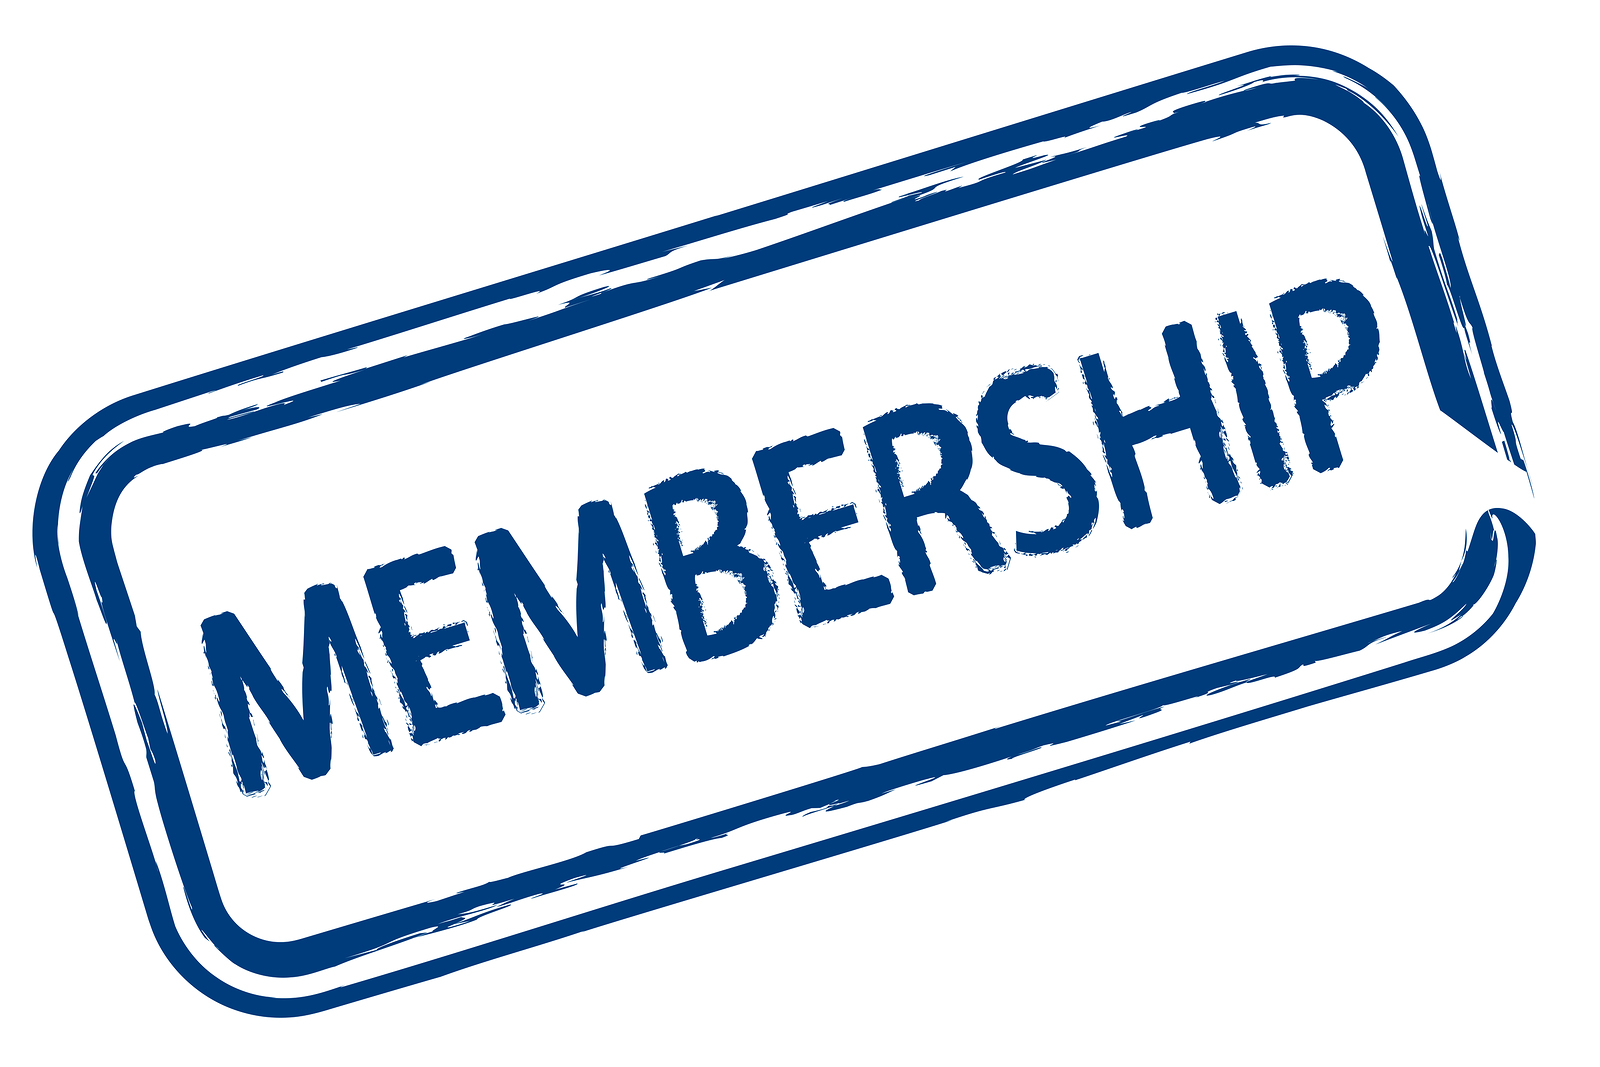 The UPCC Membership and Board election ballot for the 2015-2016 period can be found here: 2015-16 membership form. Please bring this form to the meeting on Thursday, June 11, 2015 or […]